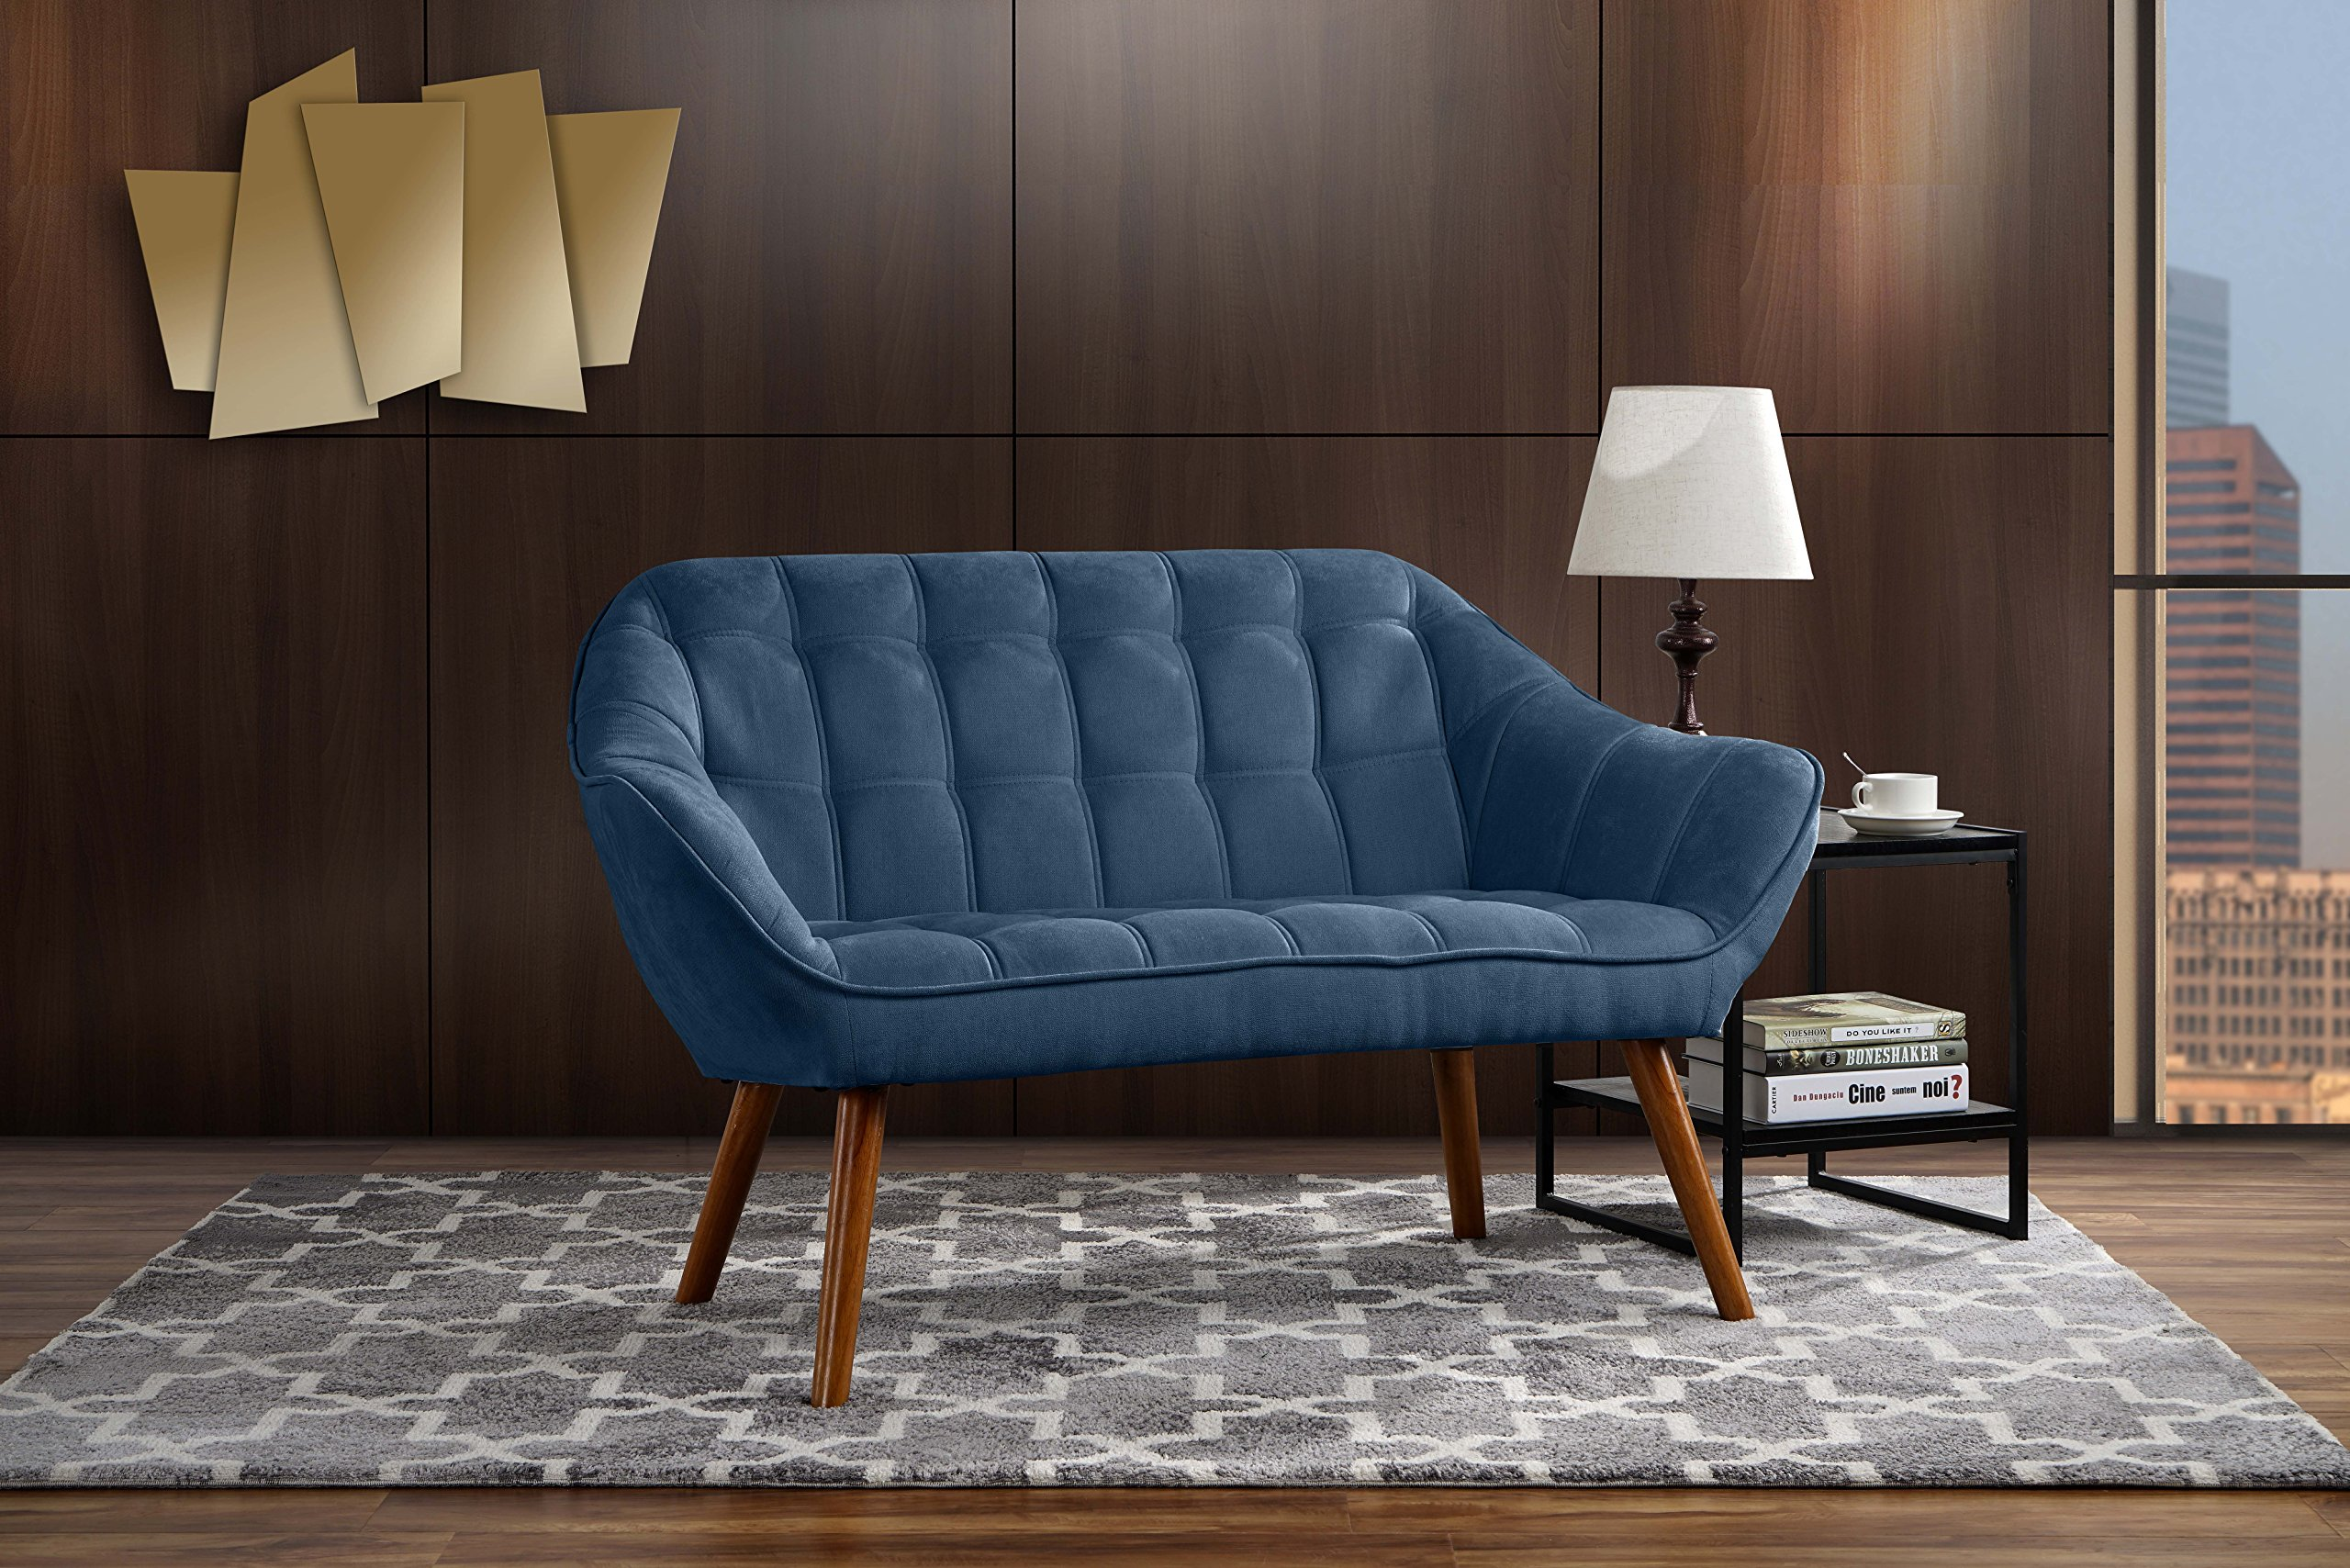 Couch for Living Room, Tufted Linen Fabric Love Seat (Blue) - Divano Roma Furniture's upholstered love seat with armrests comes in soft and bright color variances Features hand picked soft linen fabric upholstery with 4 mid-century style wooden legs Firmly padded cushions that use high density memory foam for added comfort - sofas-couches, living-room-furniture, living-room - 91VqXwIzyrL -